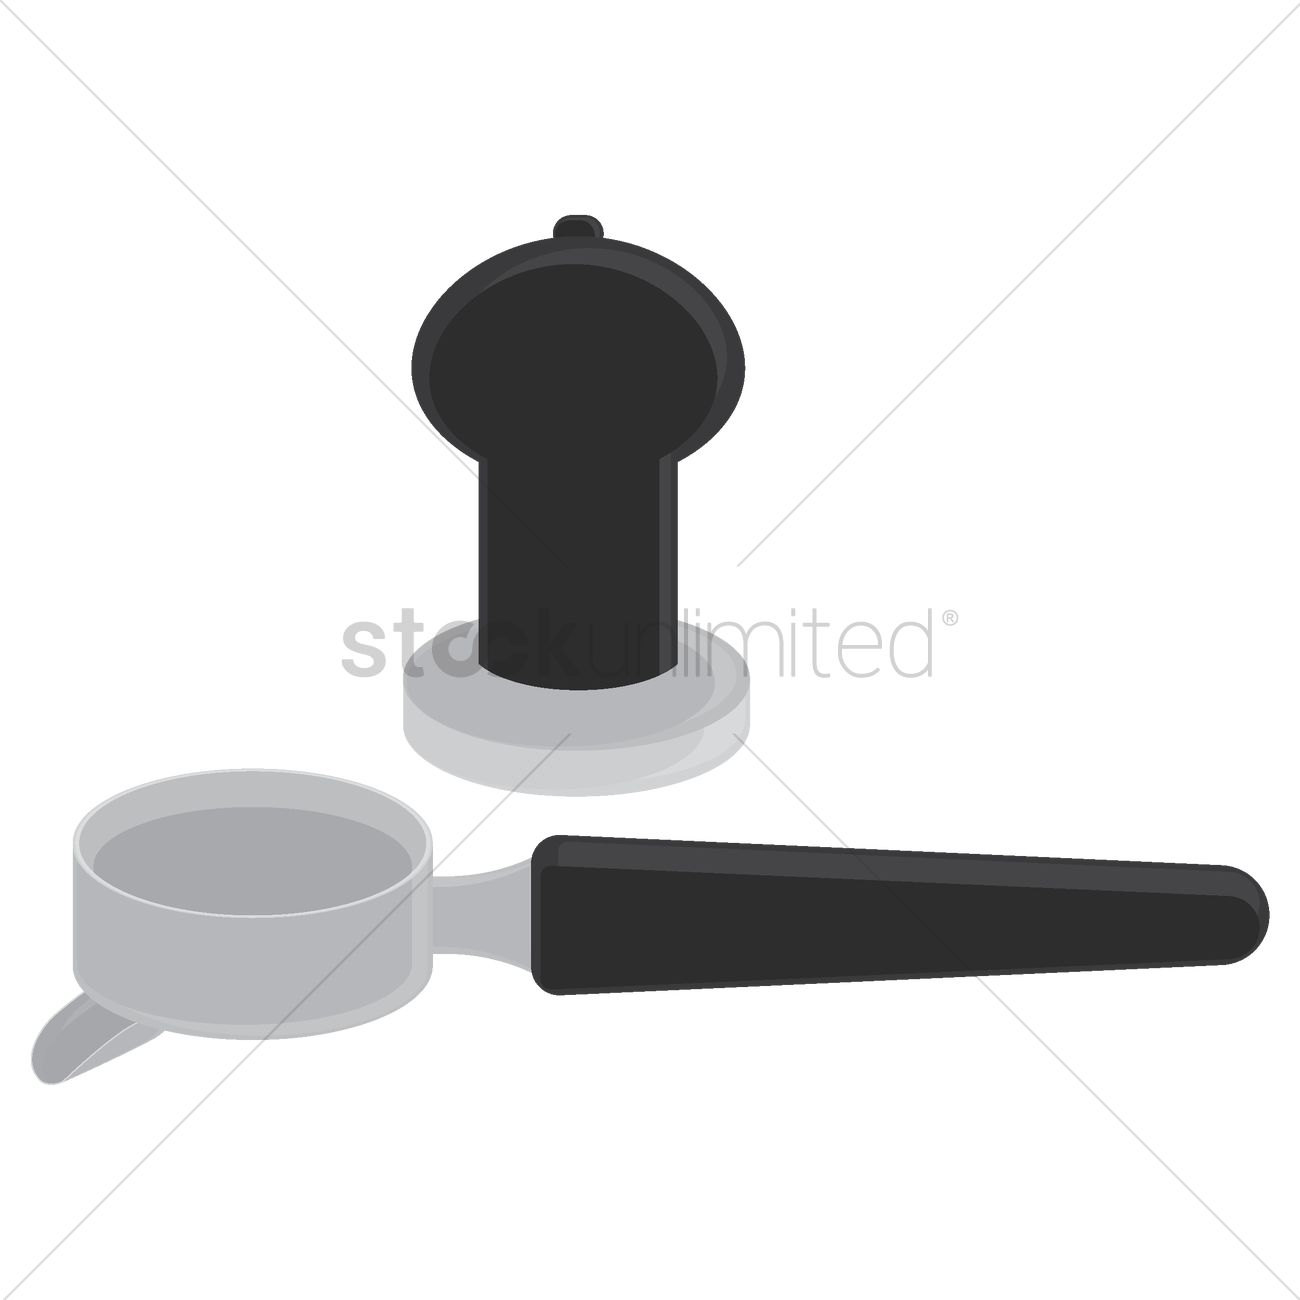 coffee portafilter and tamper vector image 1532480 stockunlimited coffee portafilter and tamper vector